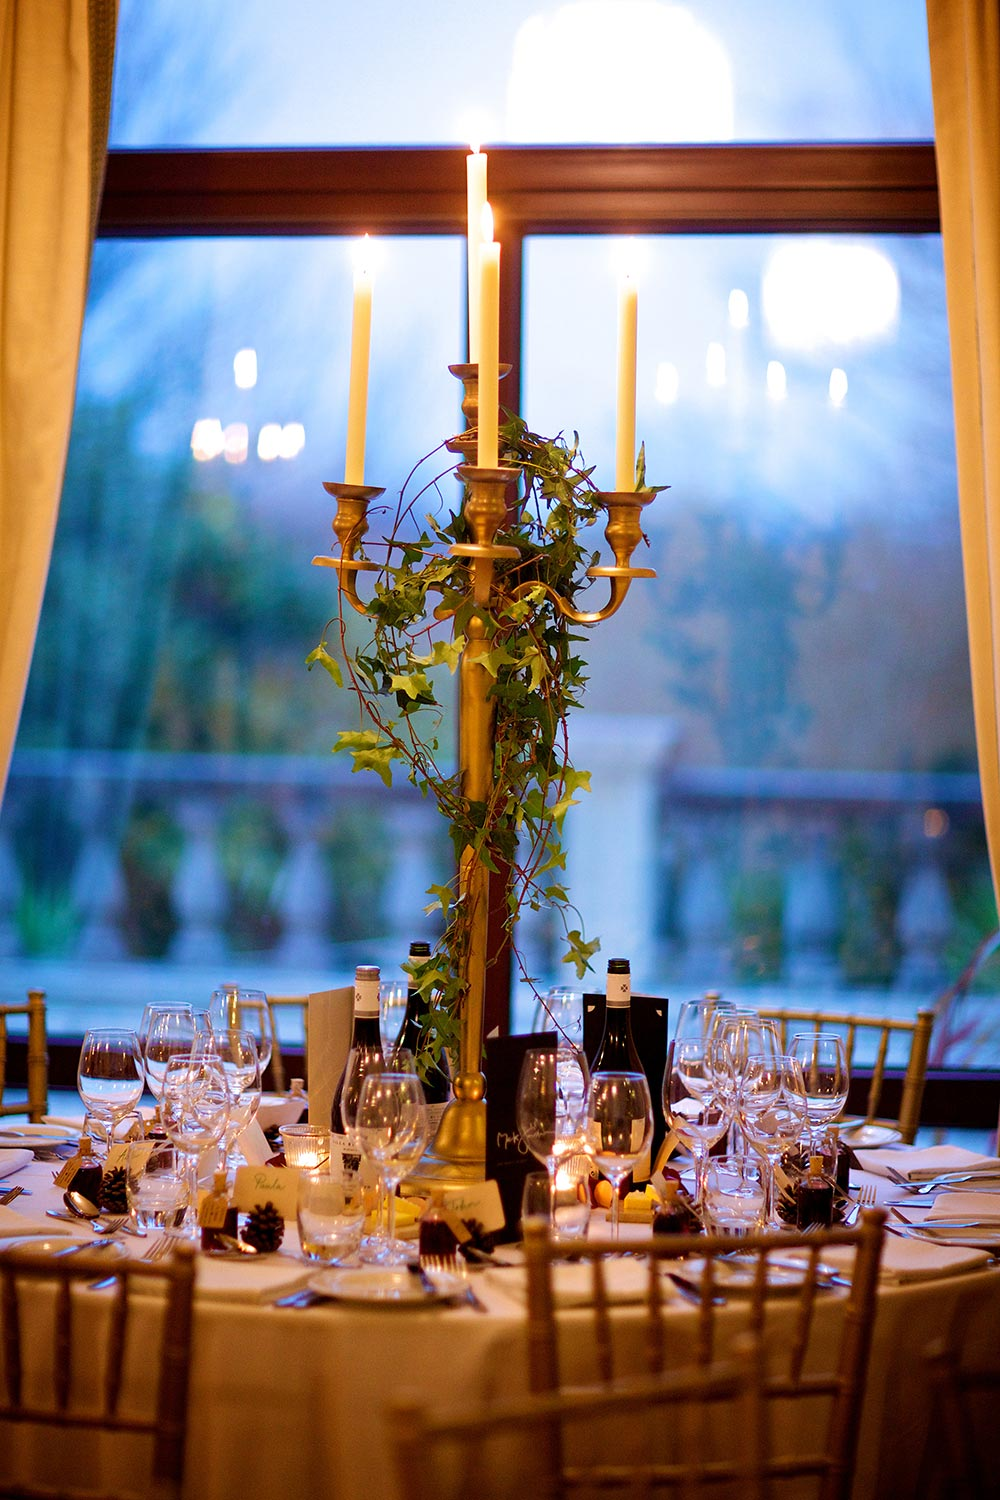 13-wilde-thyme-winter-wedding-event-flowers-styling.jpg